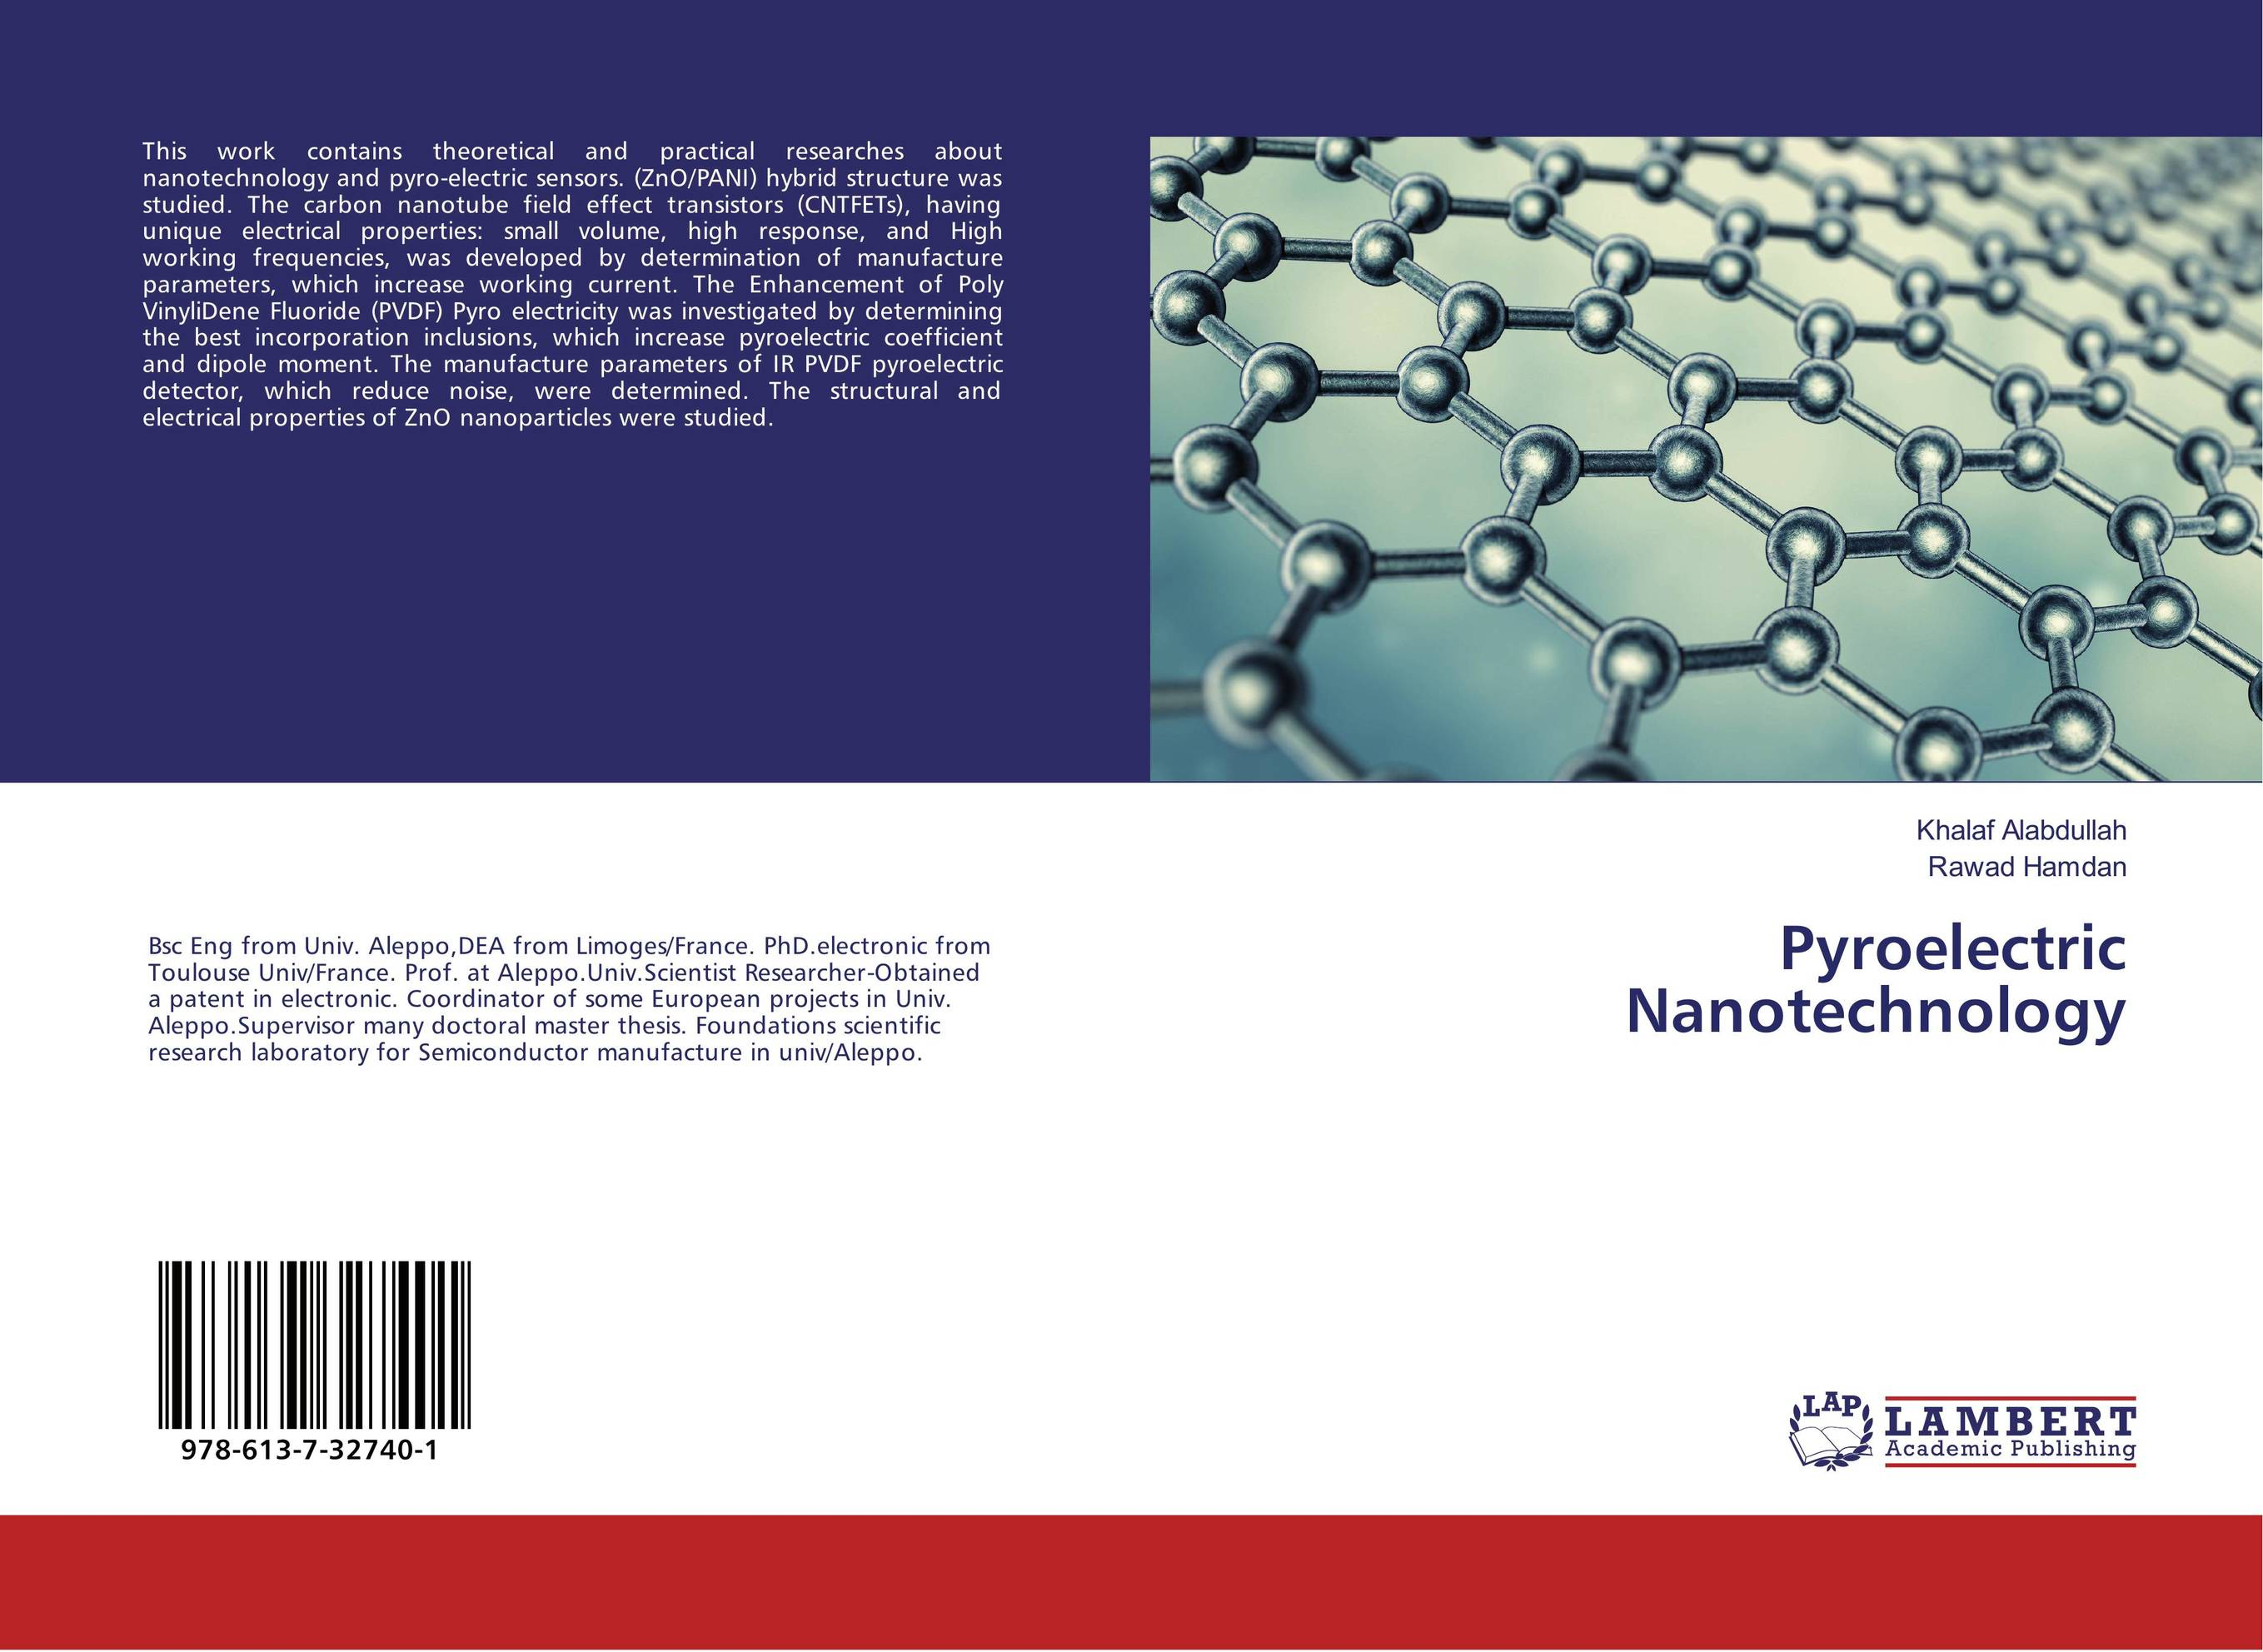 thesis on semiconductor nanoparticles 2005 - 2008 phd thesis with prof weller: continuous flow synthesis of nanoparticles since 2008 head of department particle production at can gmbh, hamburg  microfluidic synthesis of semiconductor nanoparticles for nir sensor applications germany center for applied nanotechnology (can) dr katharina poulsen.